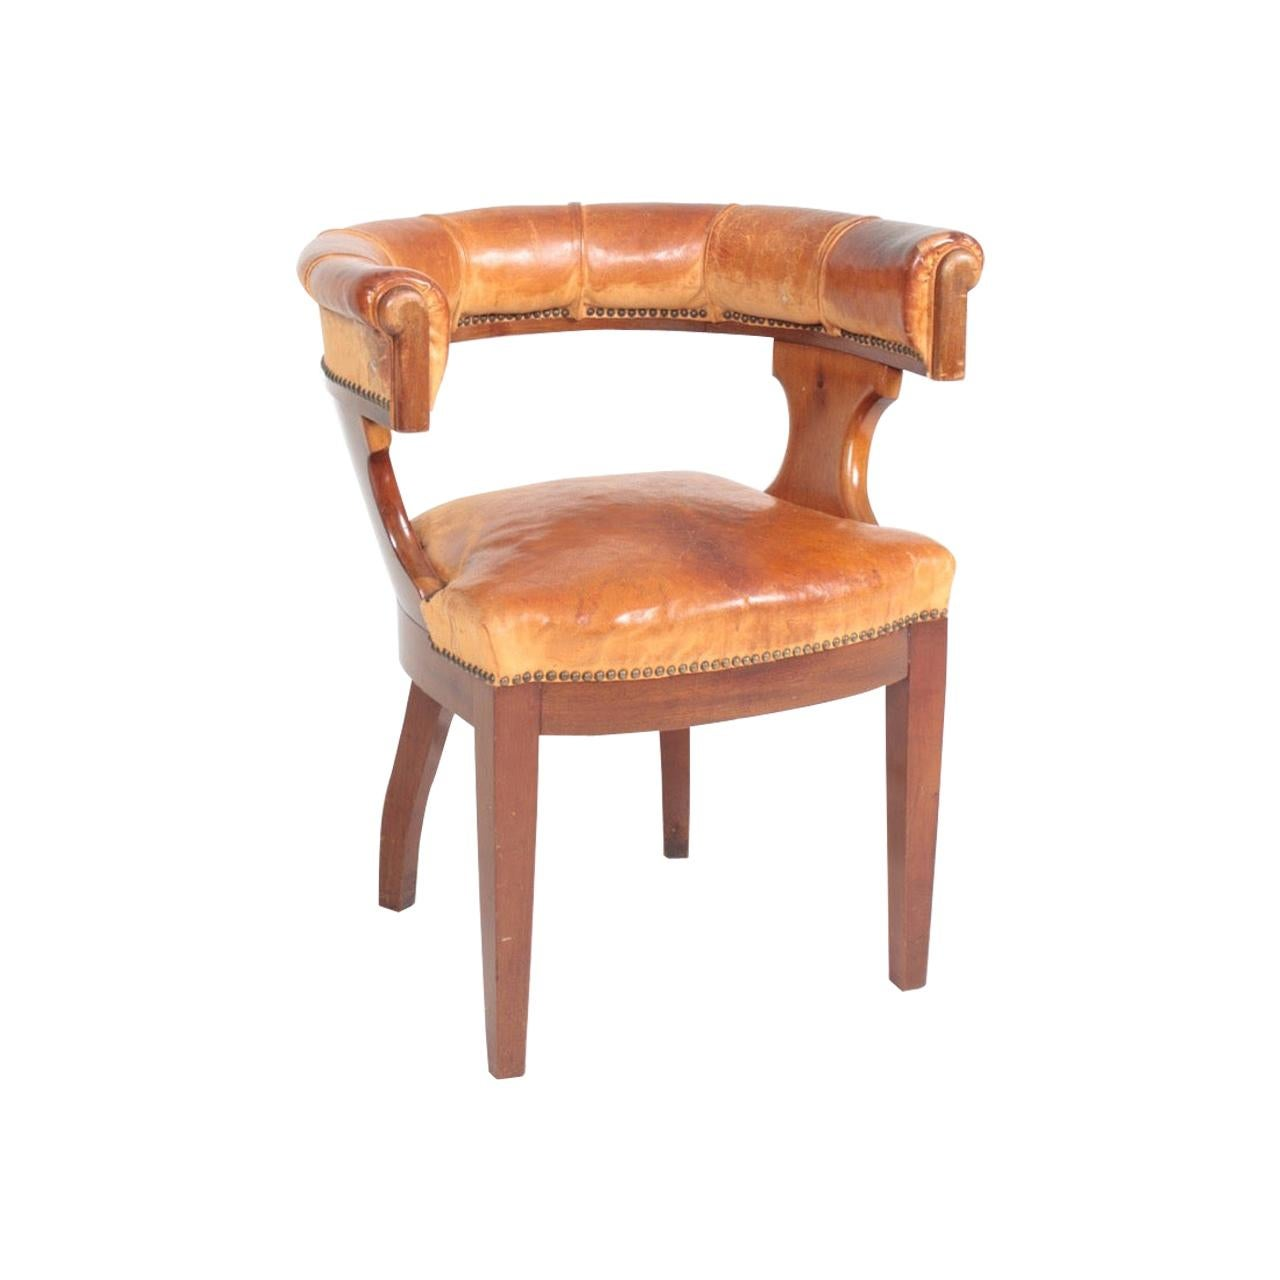 Danish Armchair in Patinated Leather Cuban Mahogany, 1930s